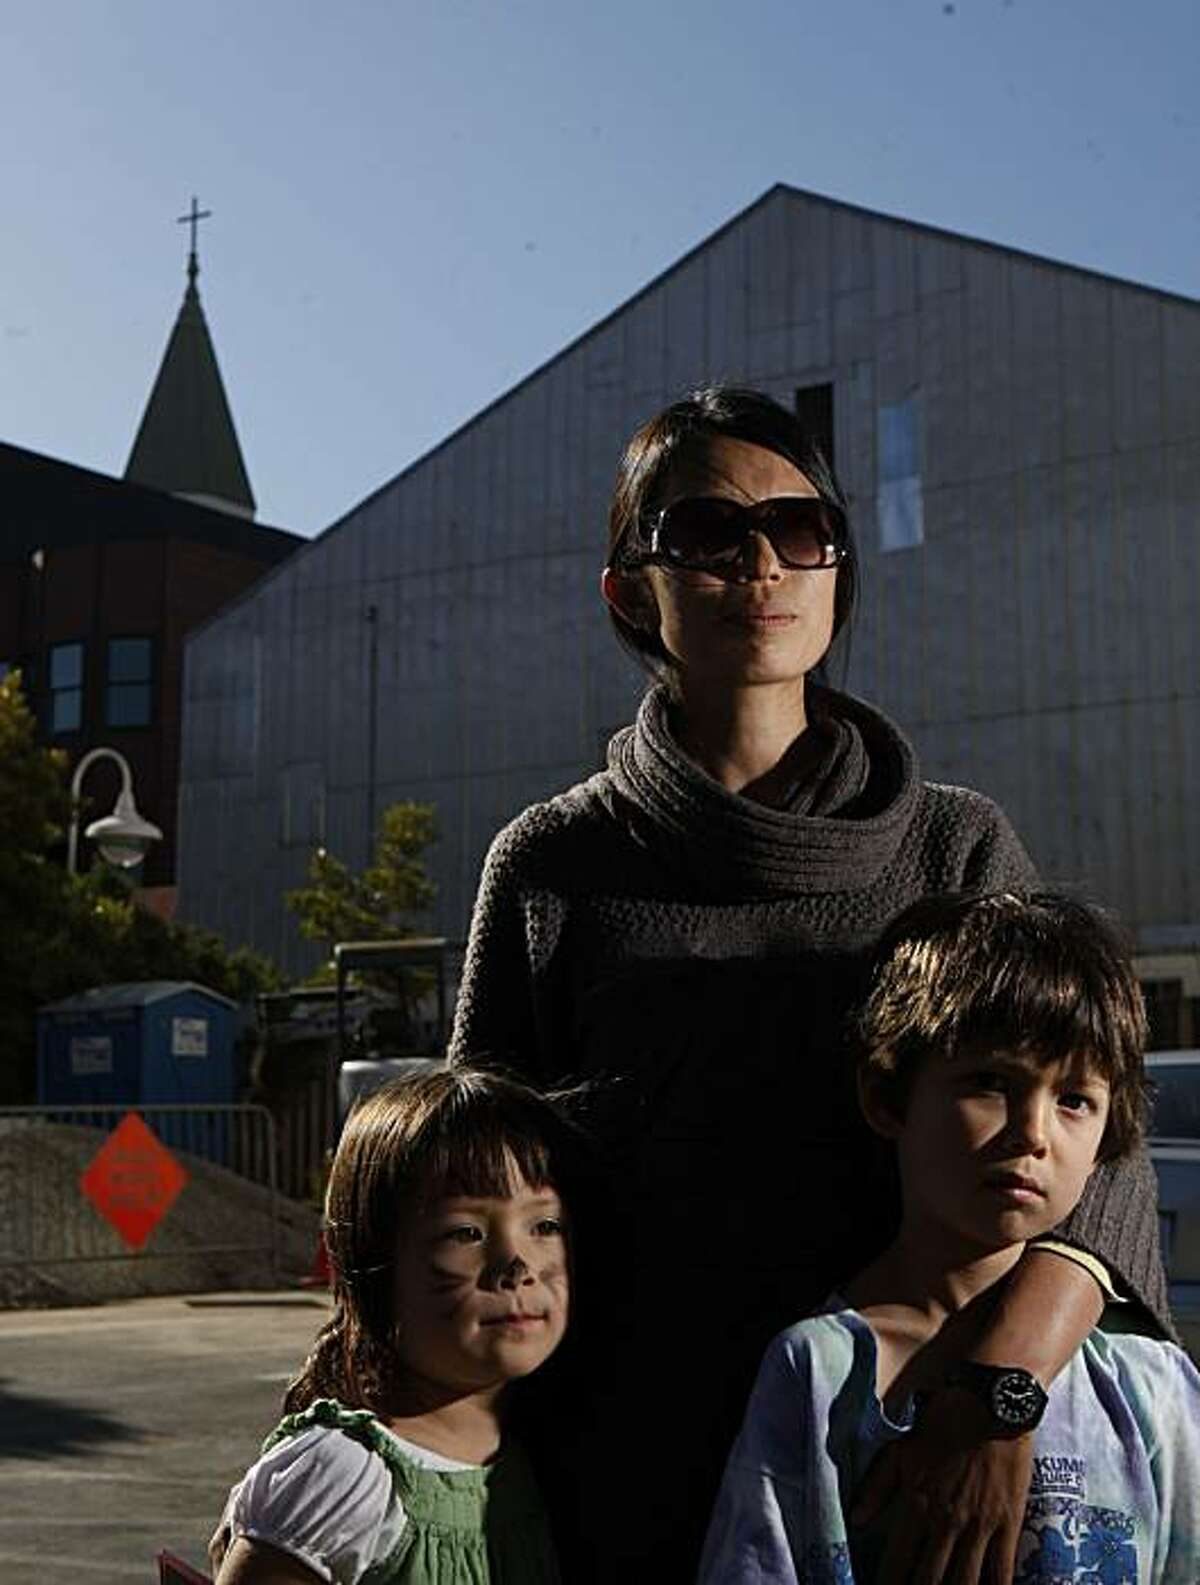 With steeple of St. Matthew's Lutheran Church looming in the background, a recently proposed site for a cell phone tower, Beverly Choe stands for portrait with her two children Anabel Harris, 4, and Ivan Harris, 6, in front of Children's Day School on Friday July 2, 2010 in San Francisco, Calif. Because of possible health concerns for her kids and other students in the area, Choe headed up a committee which ultimately resulted in cell compnay, T-Mobile, pulling out of the deal.